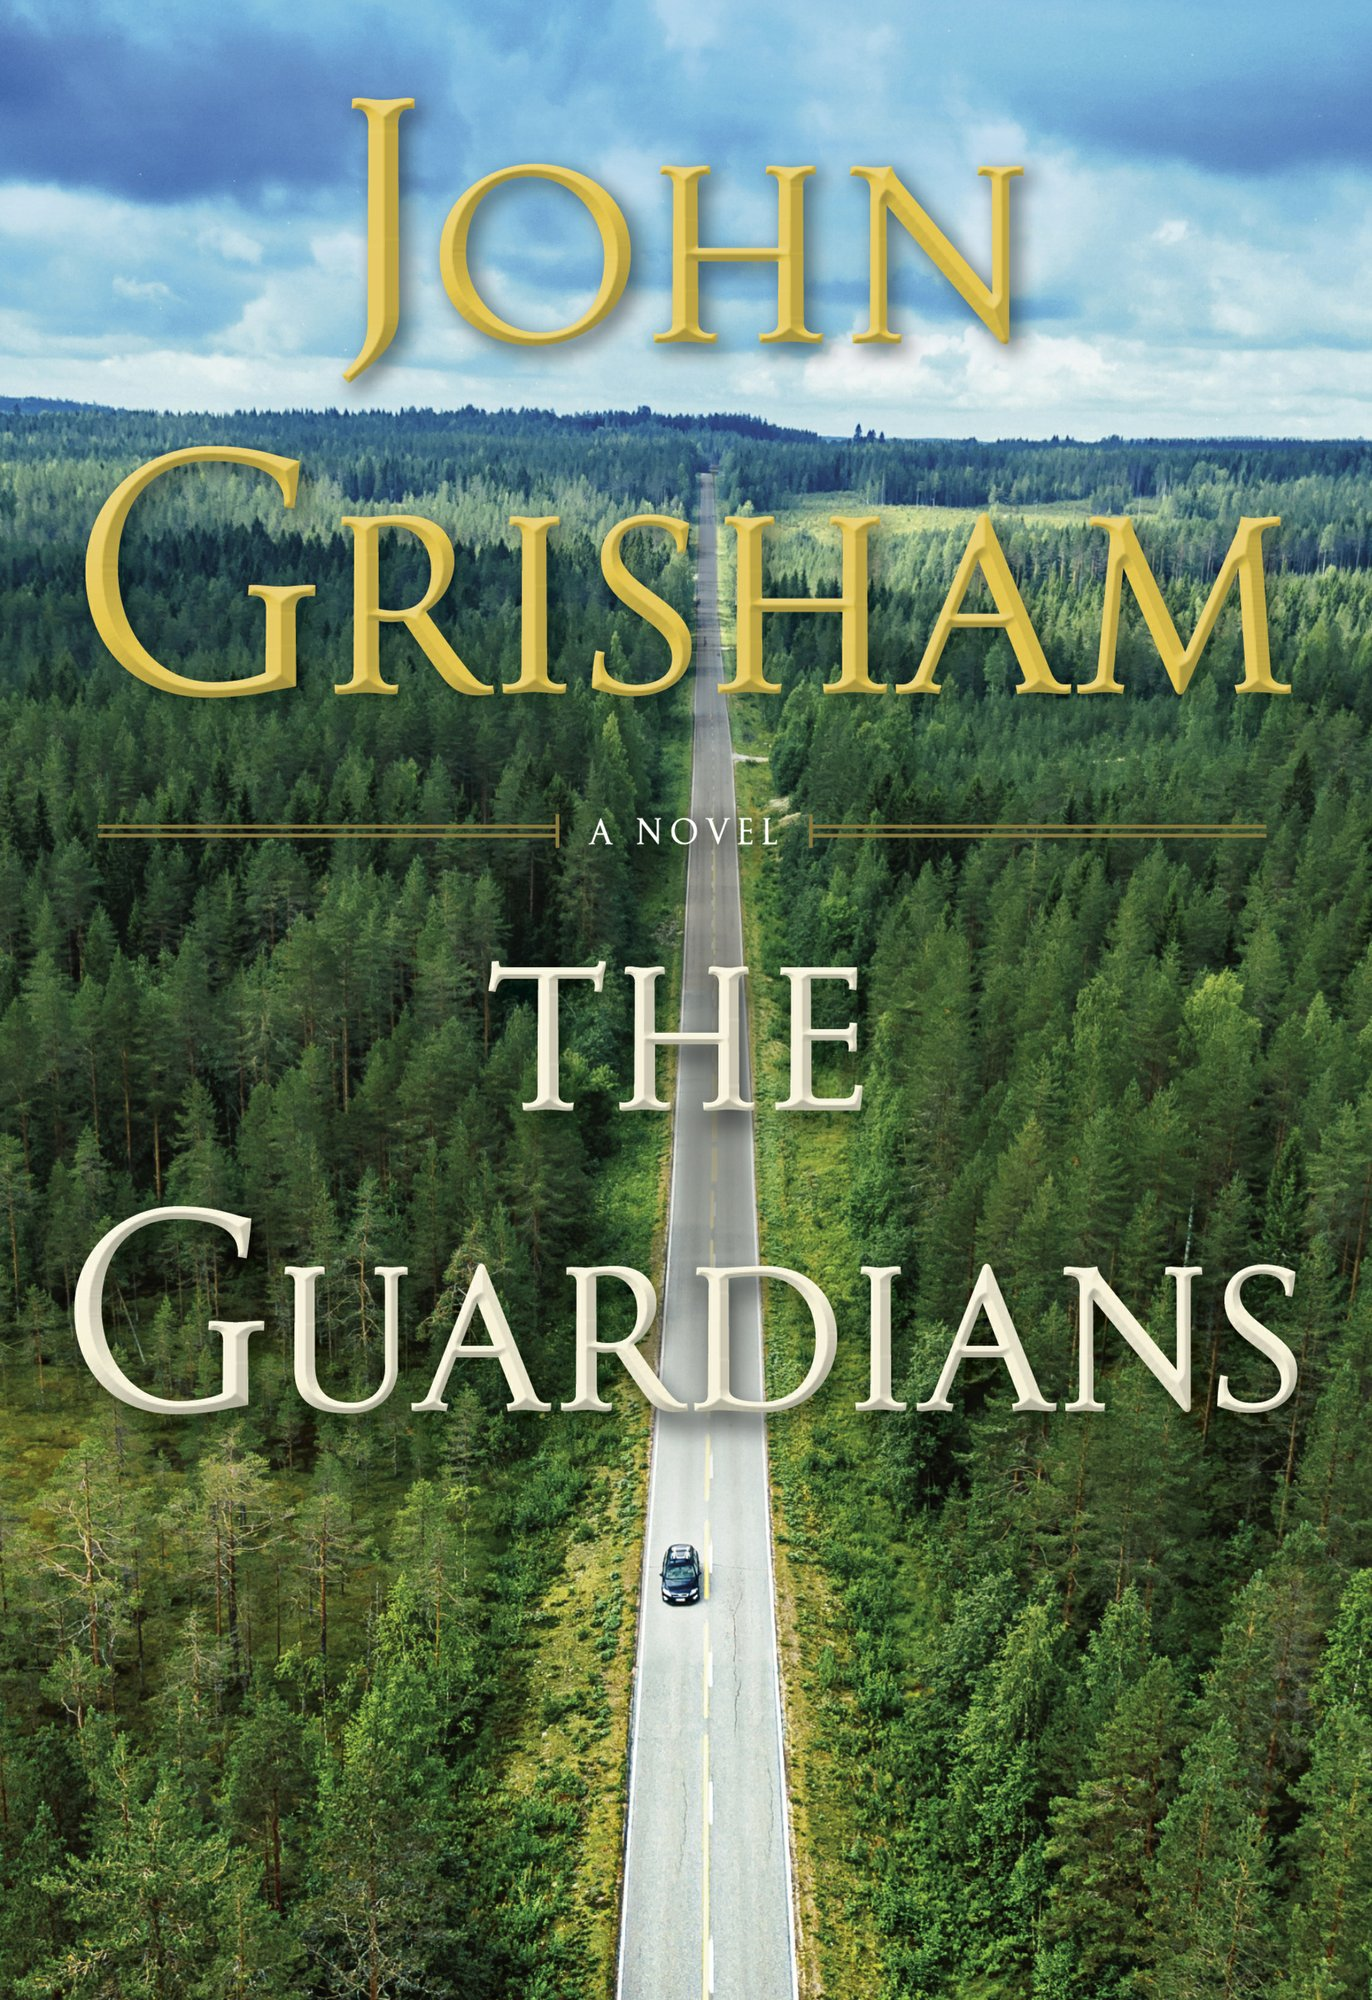 Review: Grisham's 'The Guardians' is suspenseful thriller